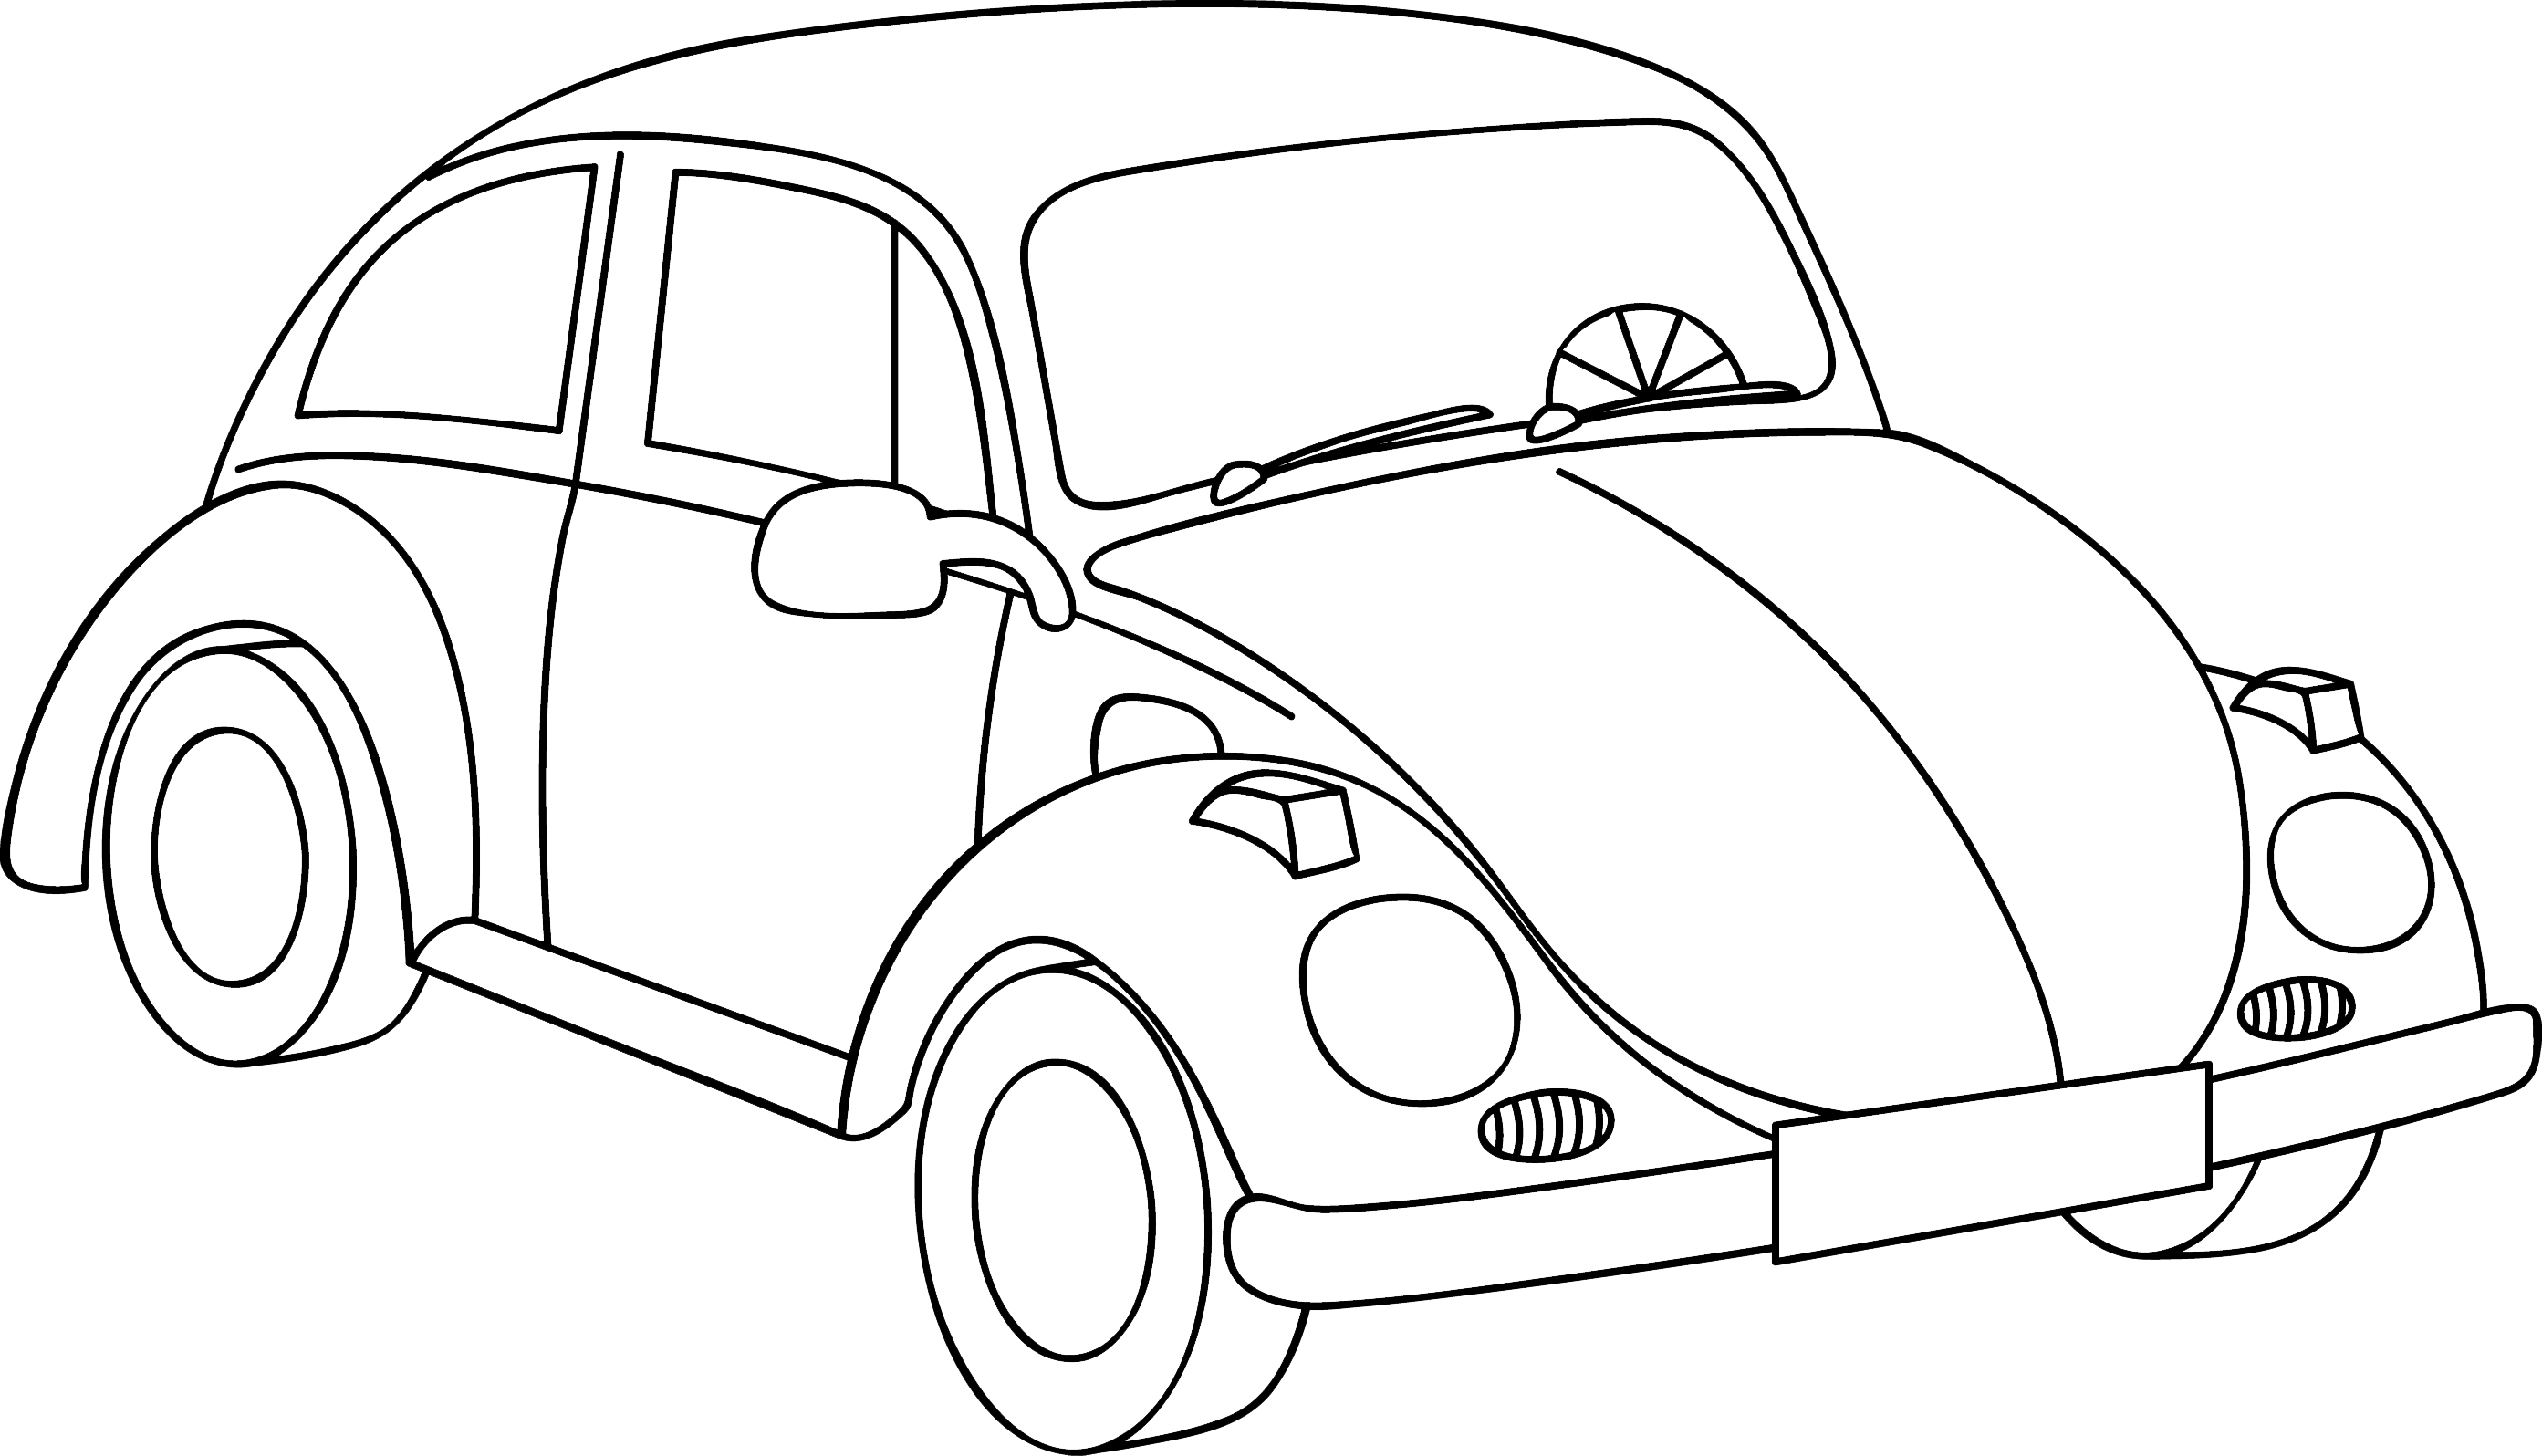 Volkswagen Drawing At Free For Personal Use Clic Bug 2786x1596 Cars Lt Colouring Pages Edding Funtastics